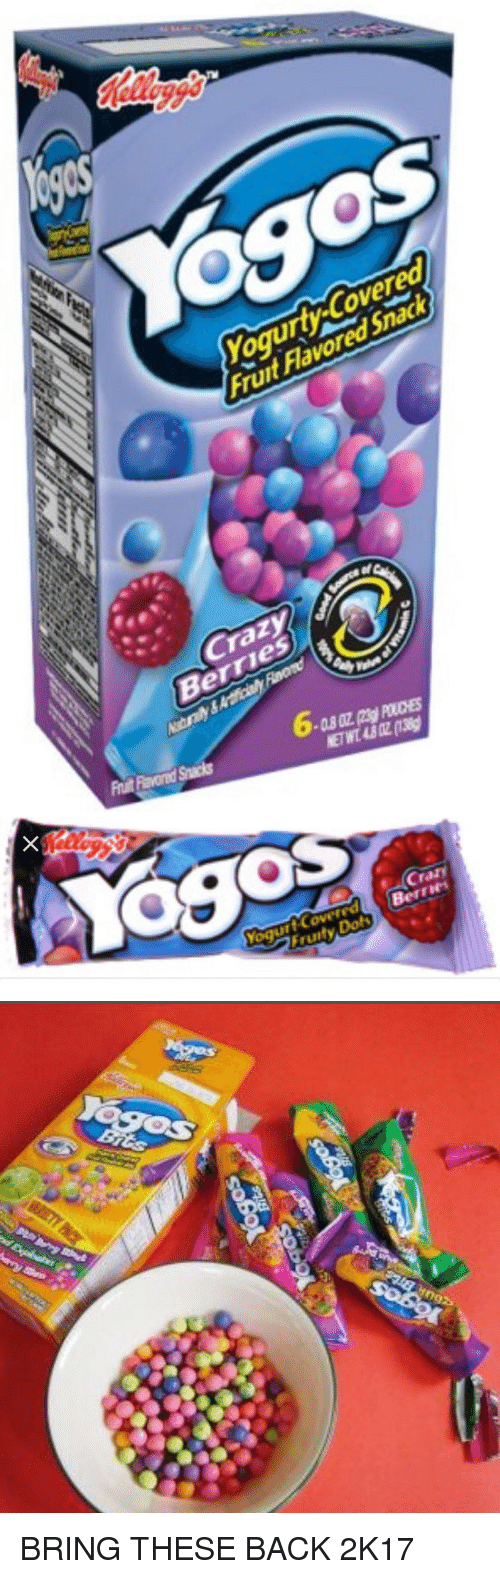 Hood, Yogurt, and Snacks: Yoses  Yogurty-Covered,  Fruit Flavored Snack  Crazy  Berries  Be  Ntrly &  Prin  ETWT48OZ(1389  az  6.   OS  Berries  Covered yogurt Fruity  Bits  ngs BRING THESE BACK 2K17